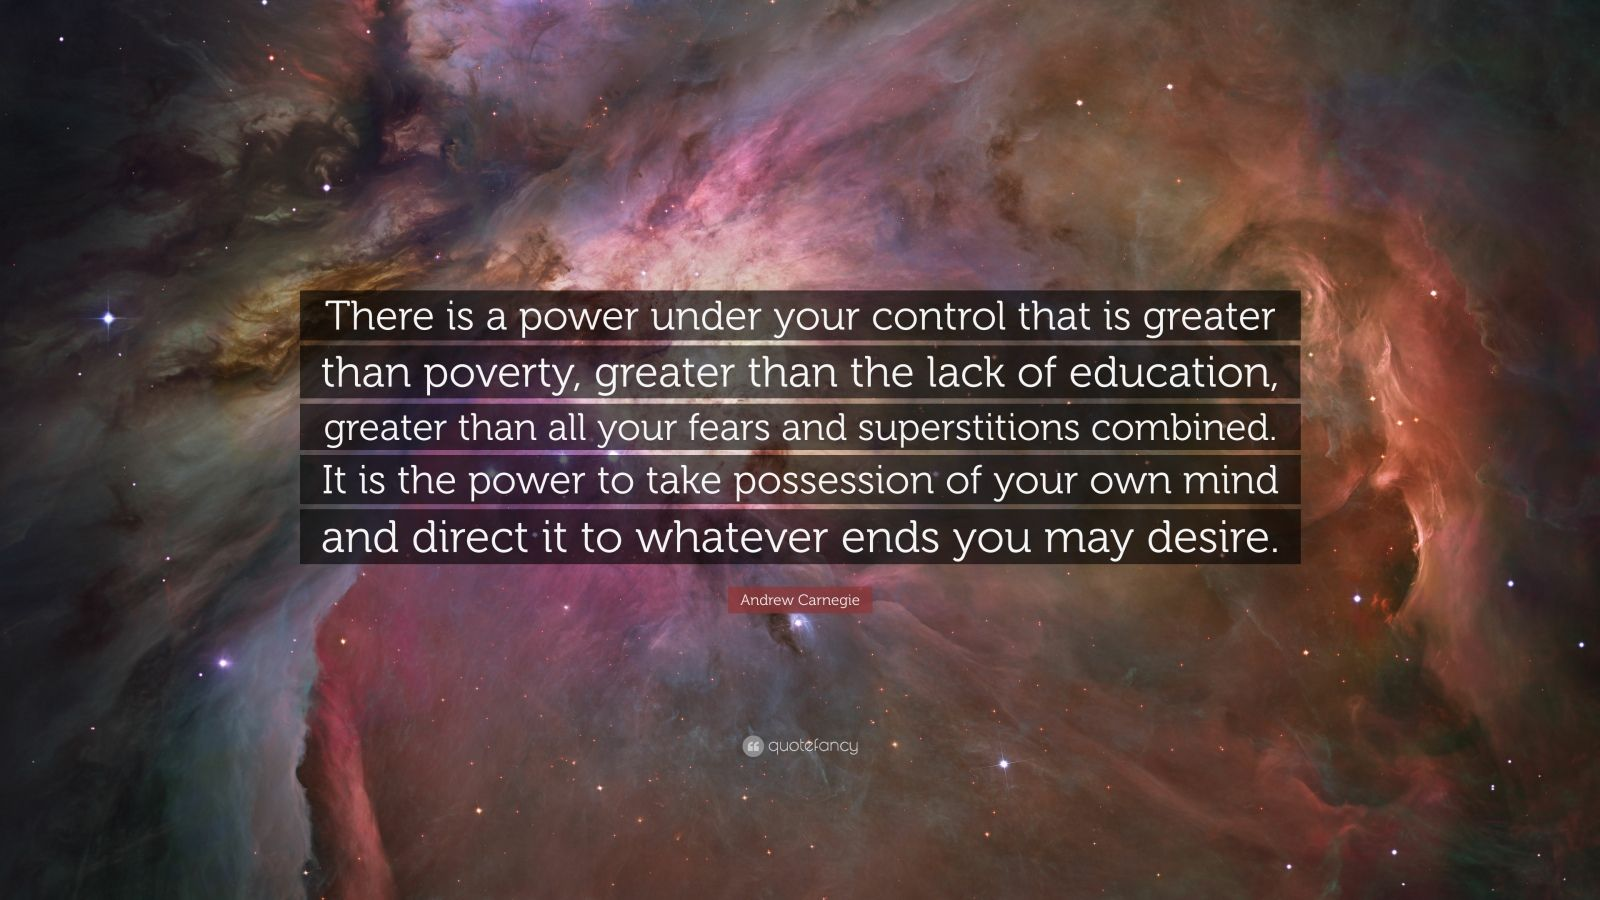 """Andrew Carnegie Quote: """"There is a power under your control that is greater than poverty, greater than the lack of education, greater than all your fears and superstitions combined. It is the power to take possession of your own mind and direct it to whatever ends you may desire."""""""